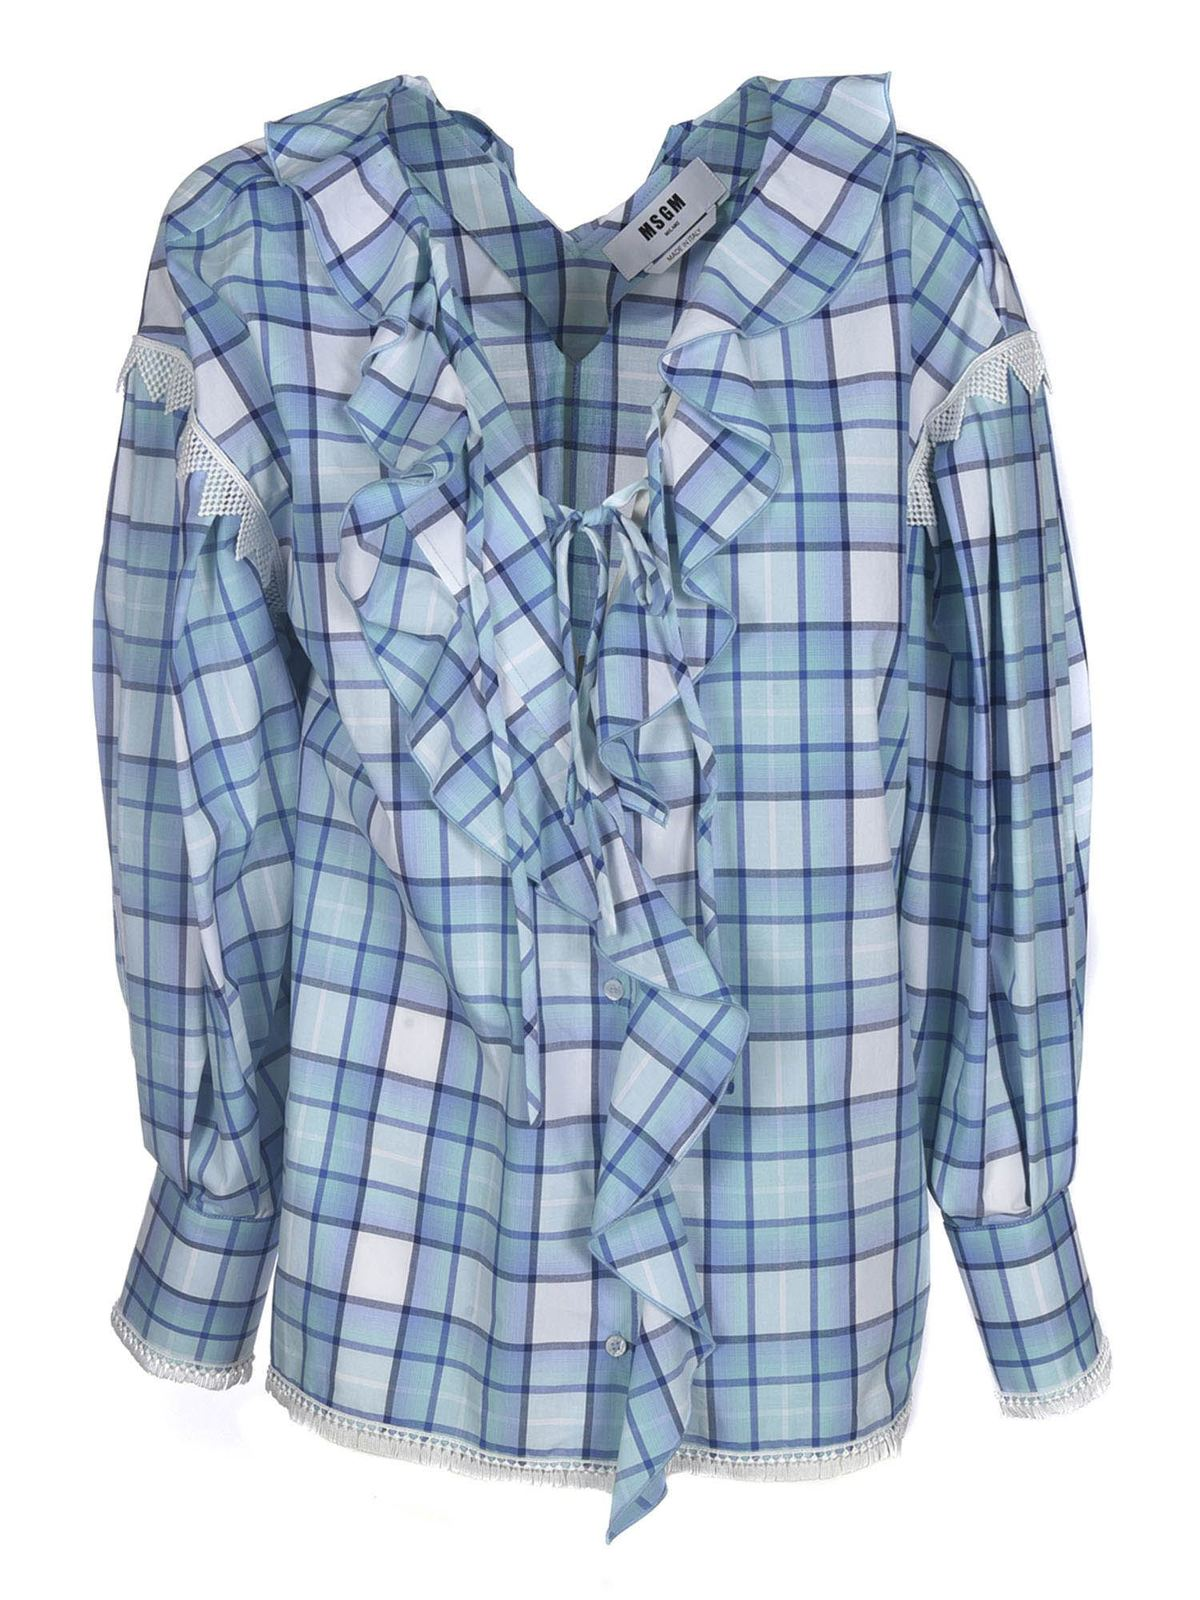 Msgm CHECKED PATTERN BLOUSE IN BLUE AND WHITE